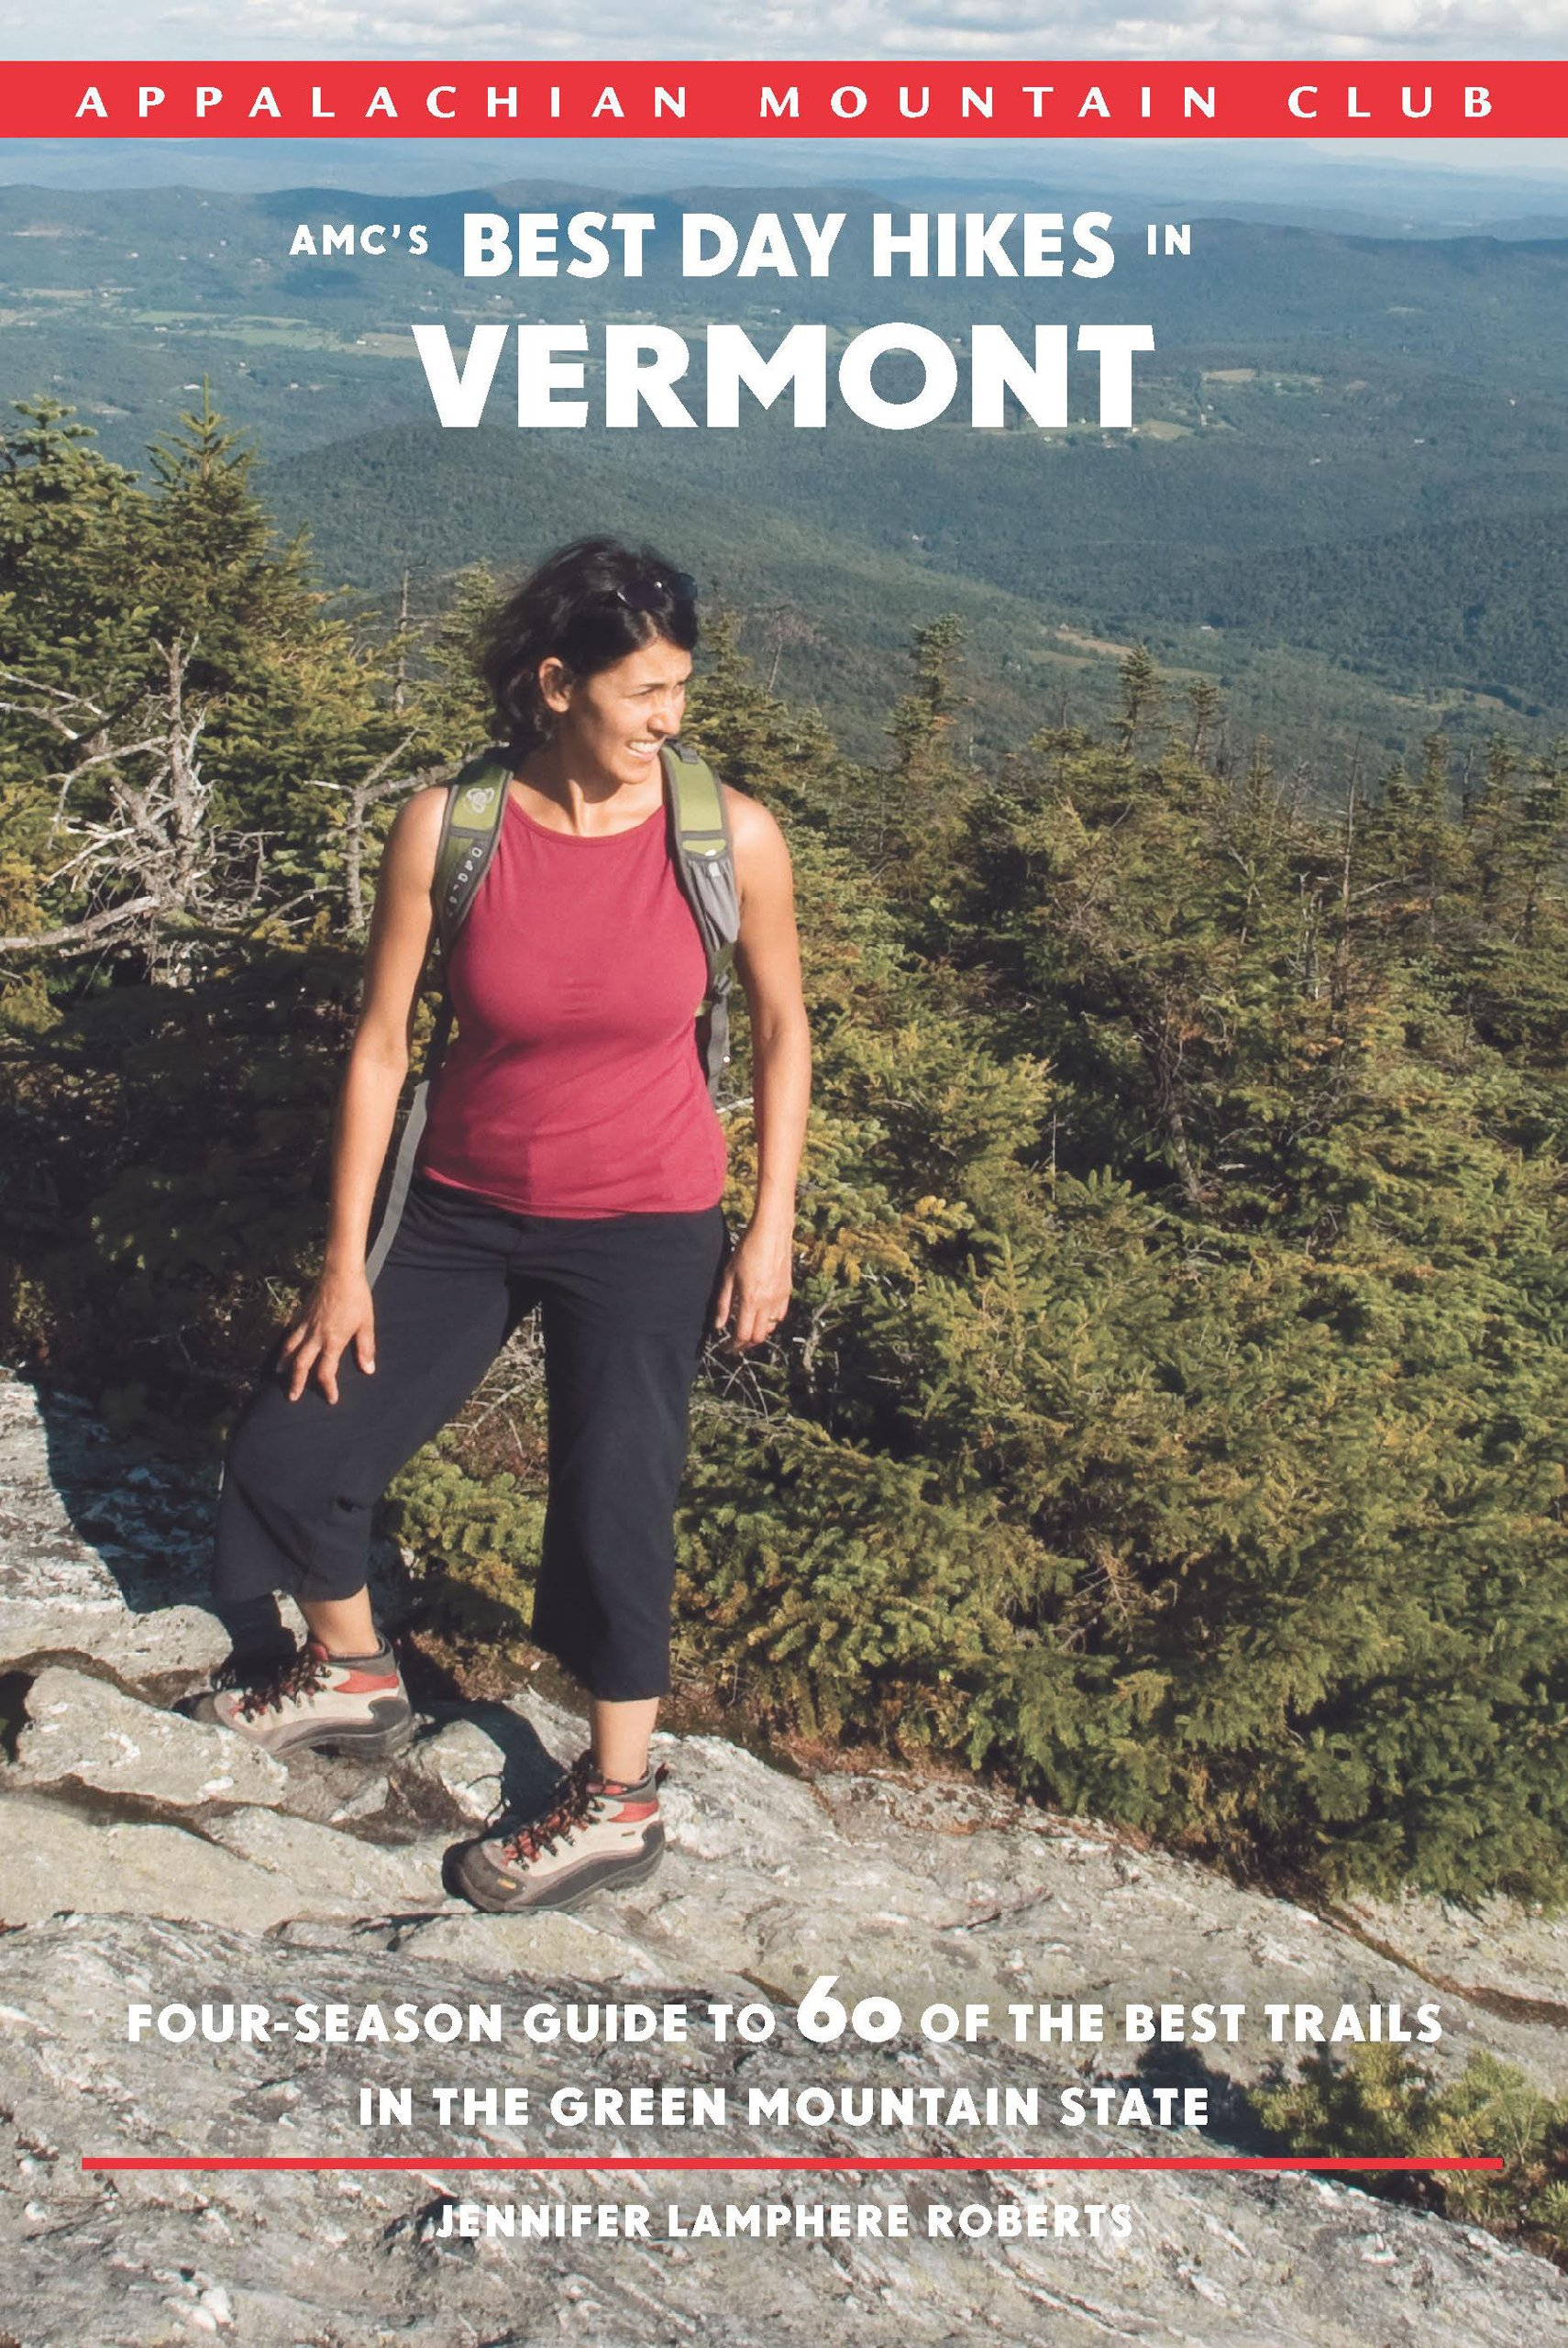 AMC's Best Day Hikes in Vermont: Four-Season Guide to 60 of